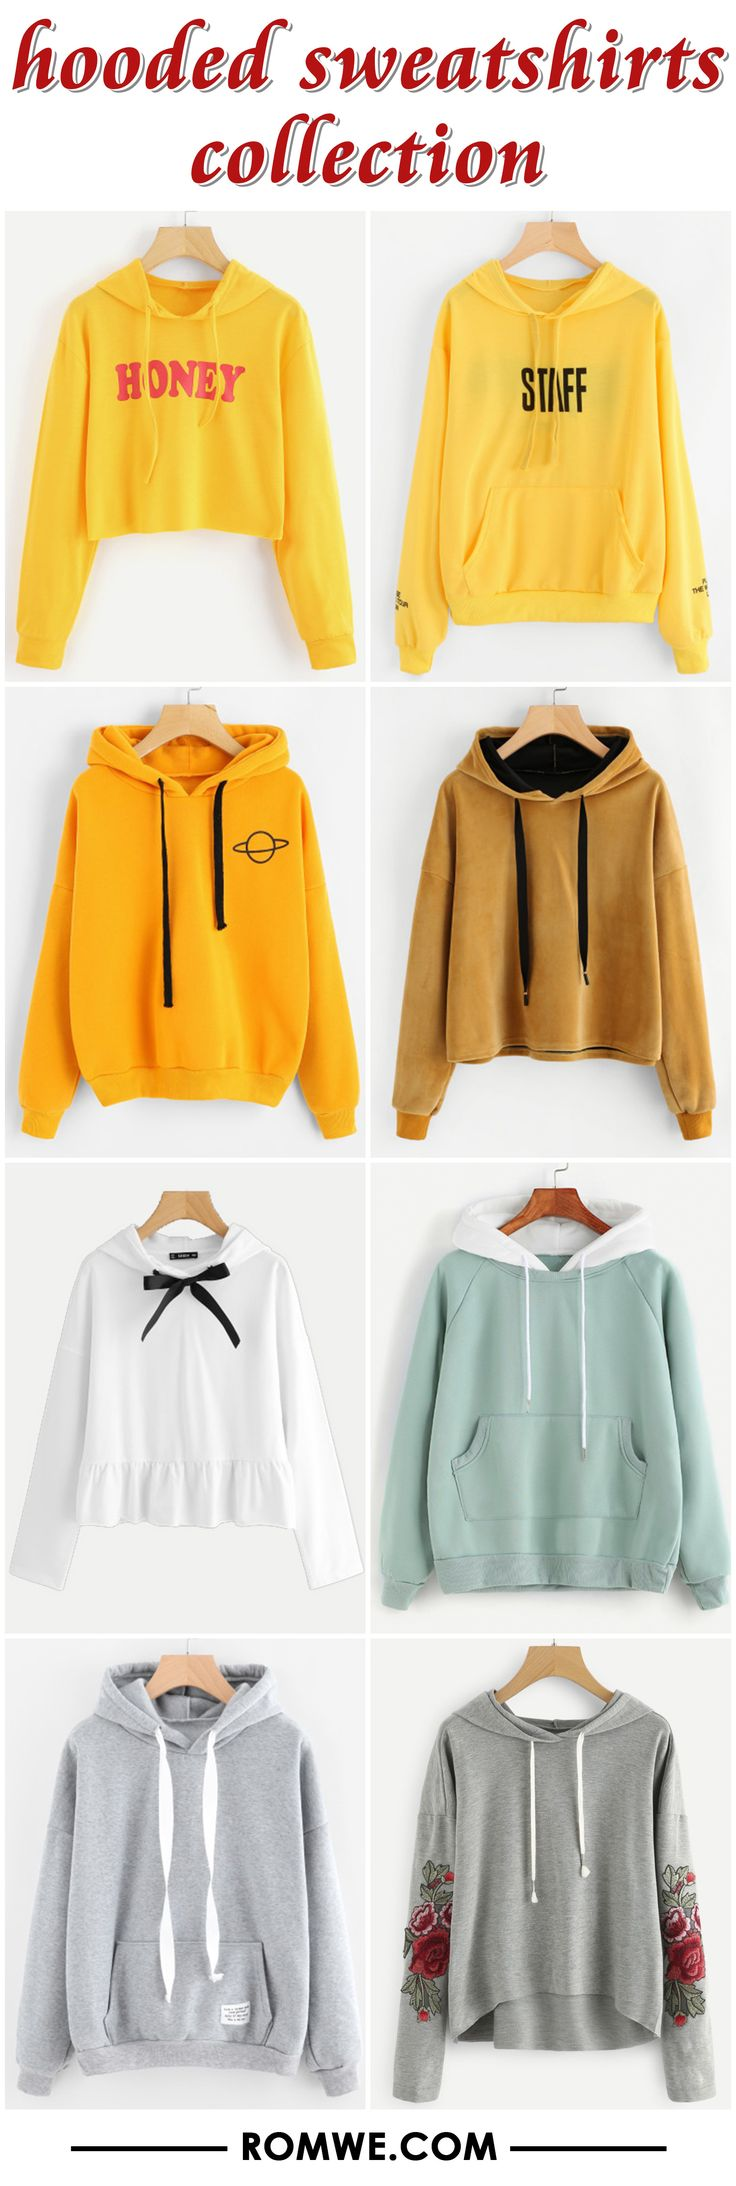 hooded sweatshirts collection from romwe.com